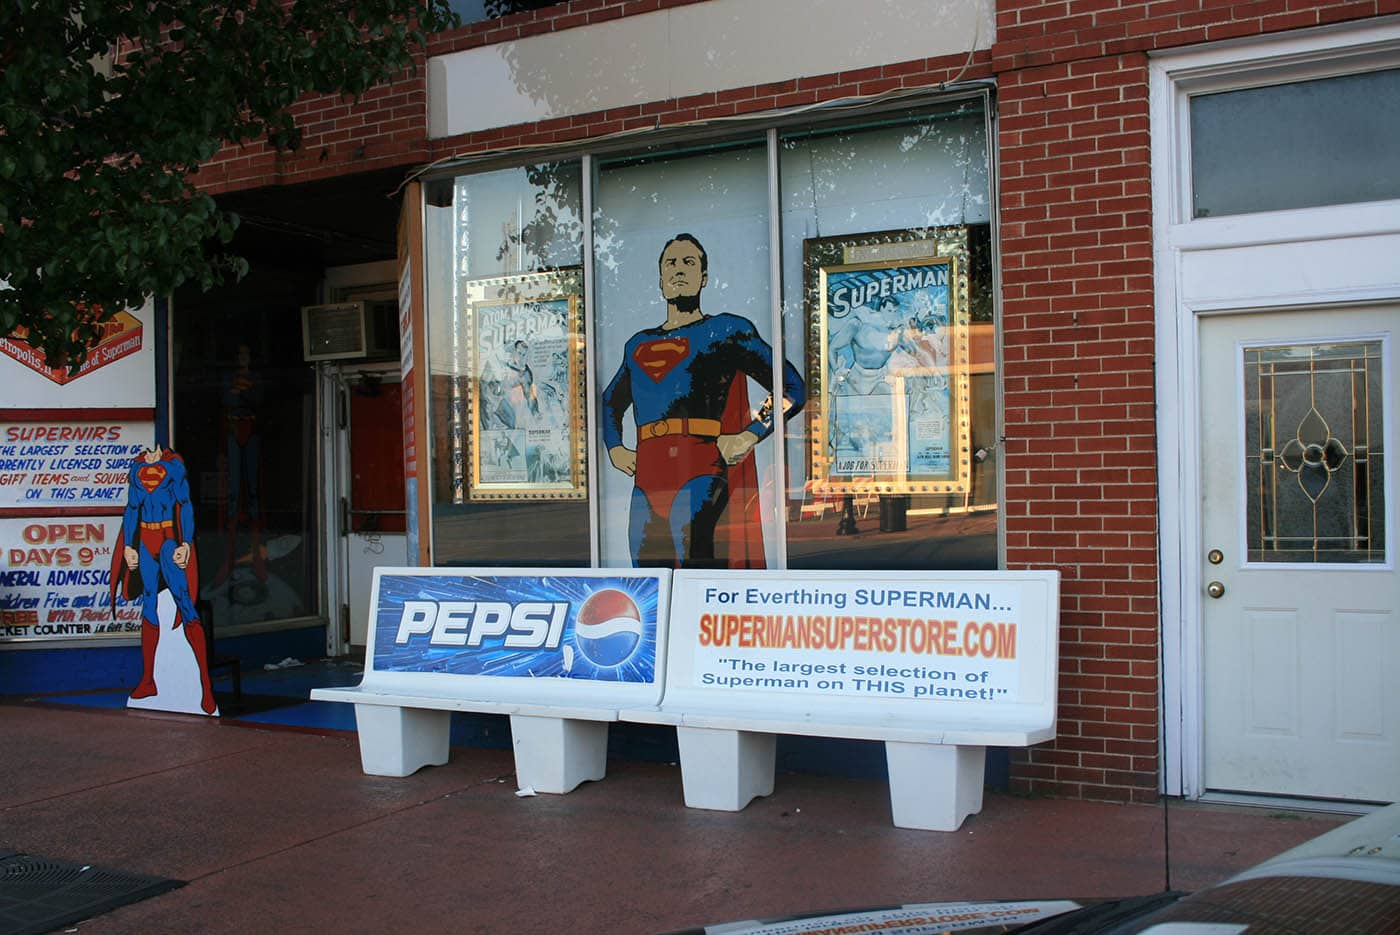 Superman bus bench in Superman Square in Metropolis, Illinois